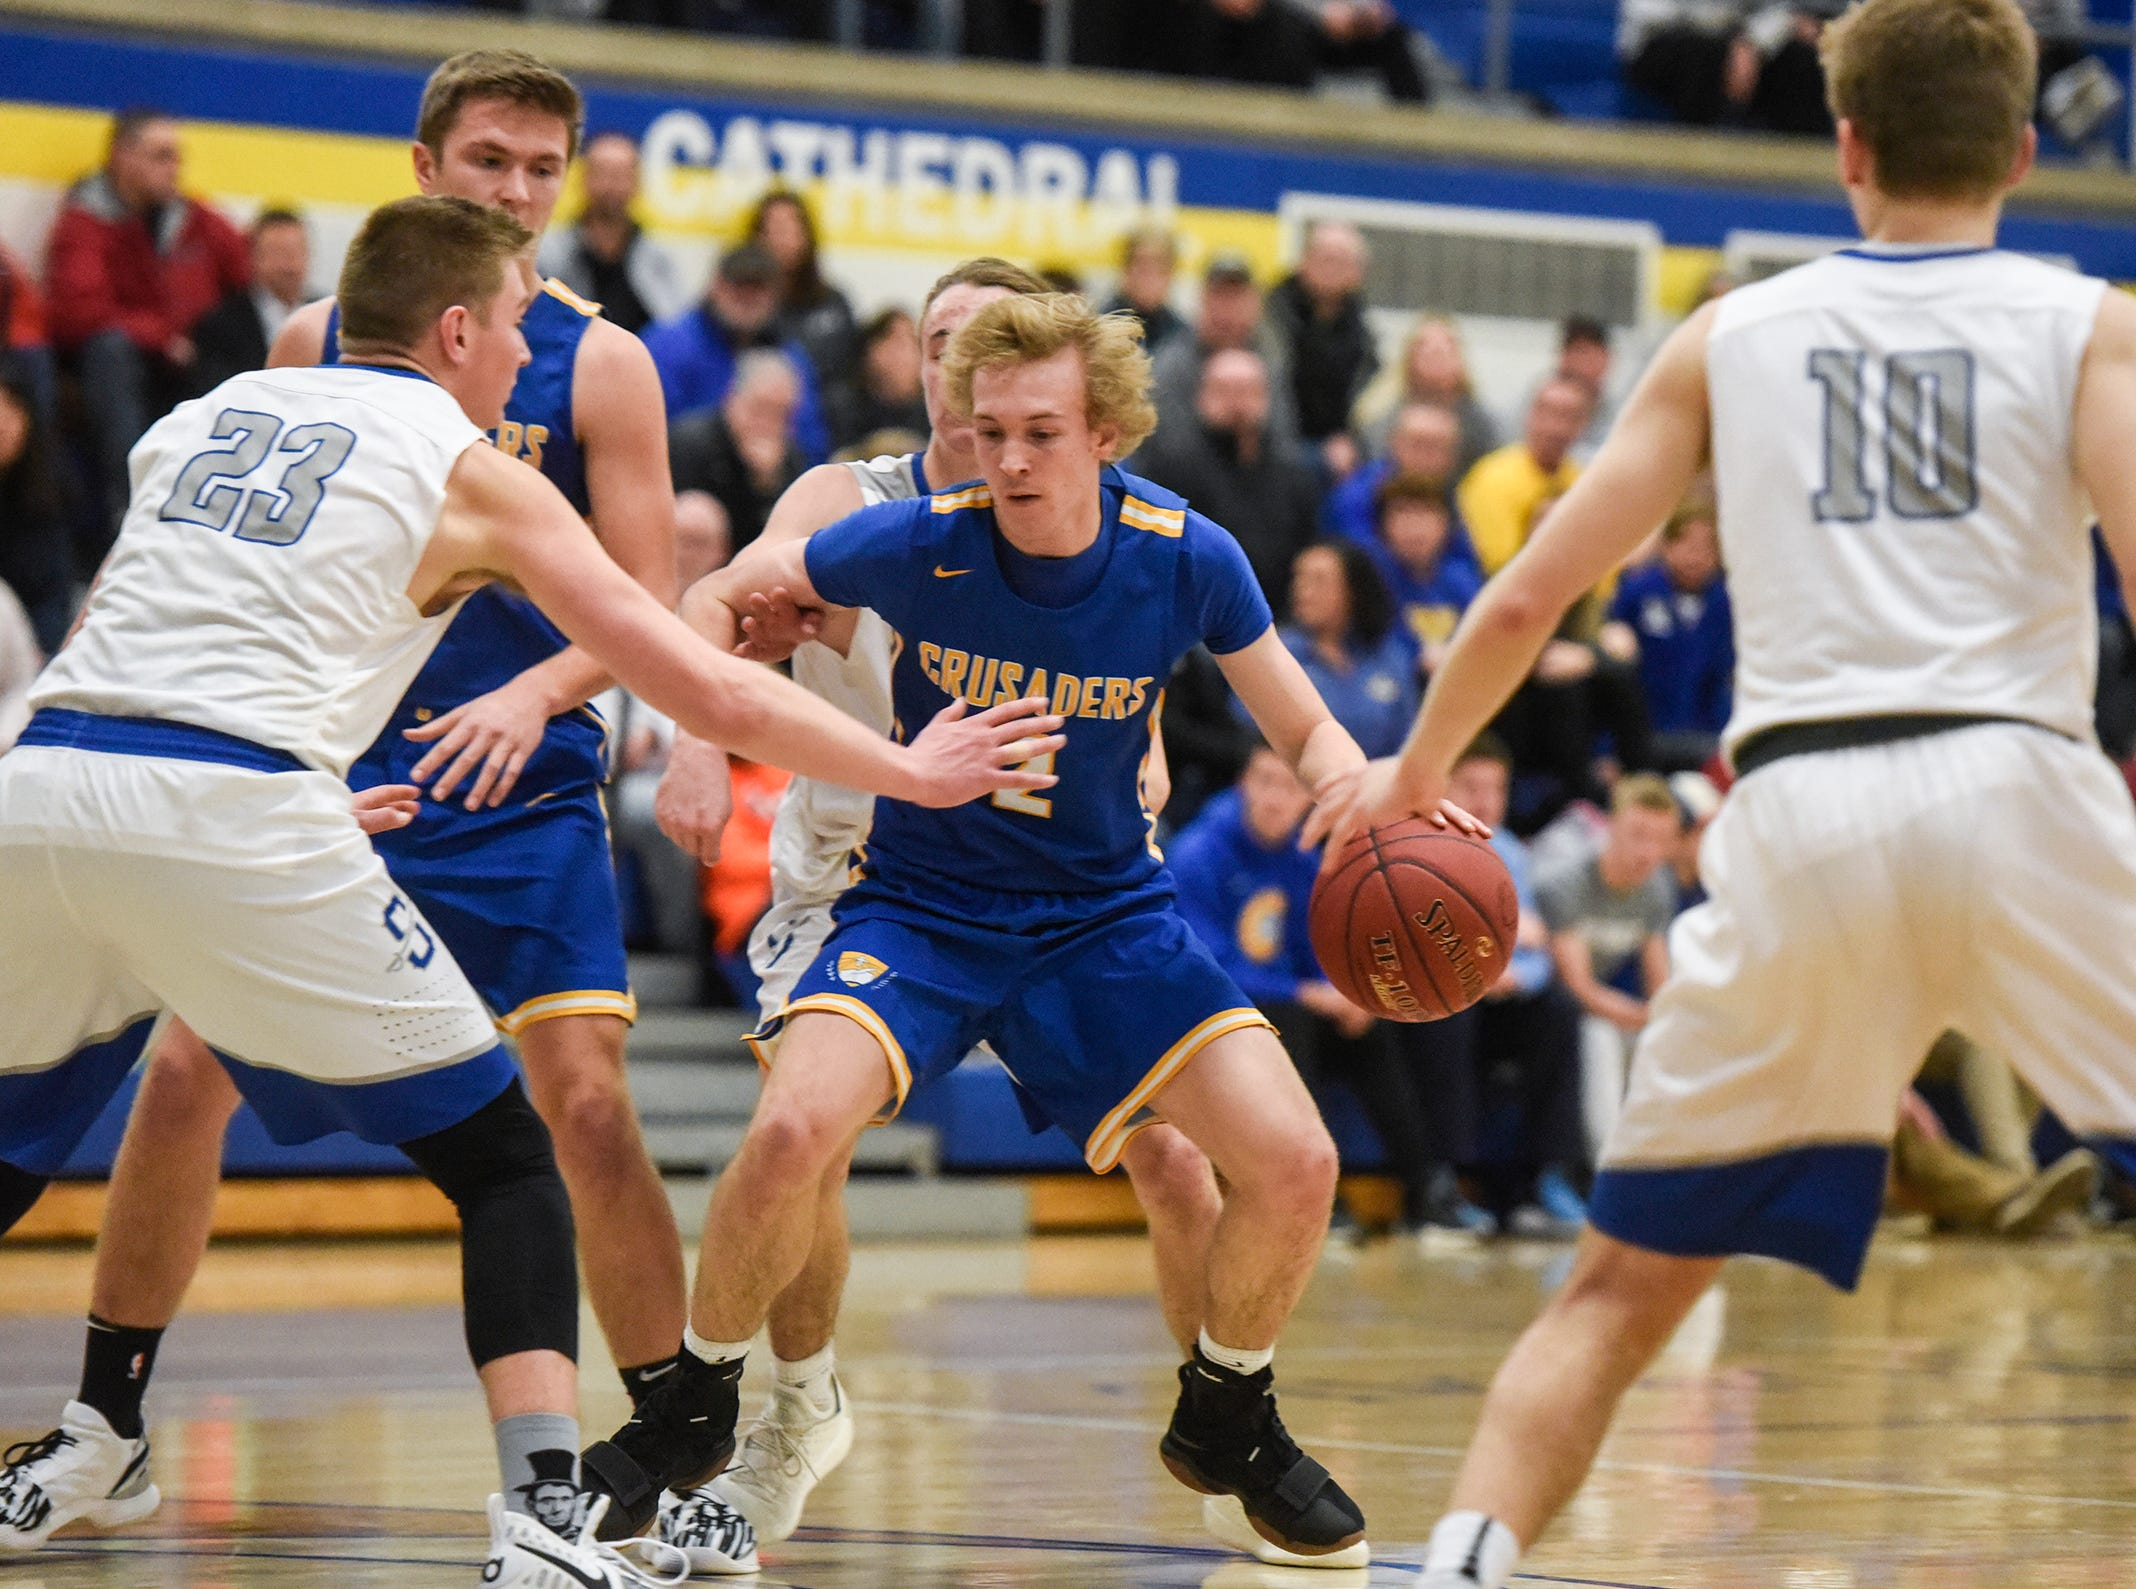 Cathedral's Andrew Weisser drives to the basket during the game Tuesday, Jan. 8, against Sartell at Cathedral High School in St. Cloud.